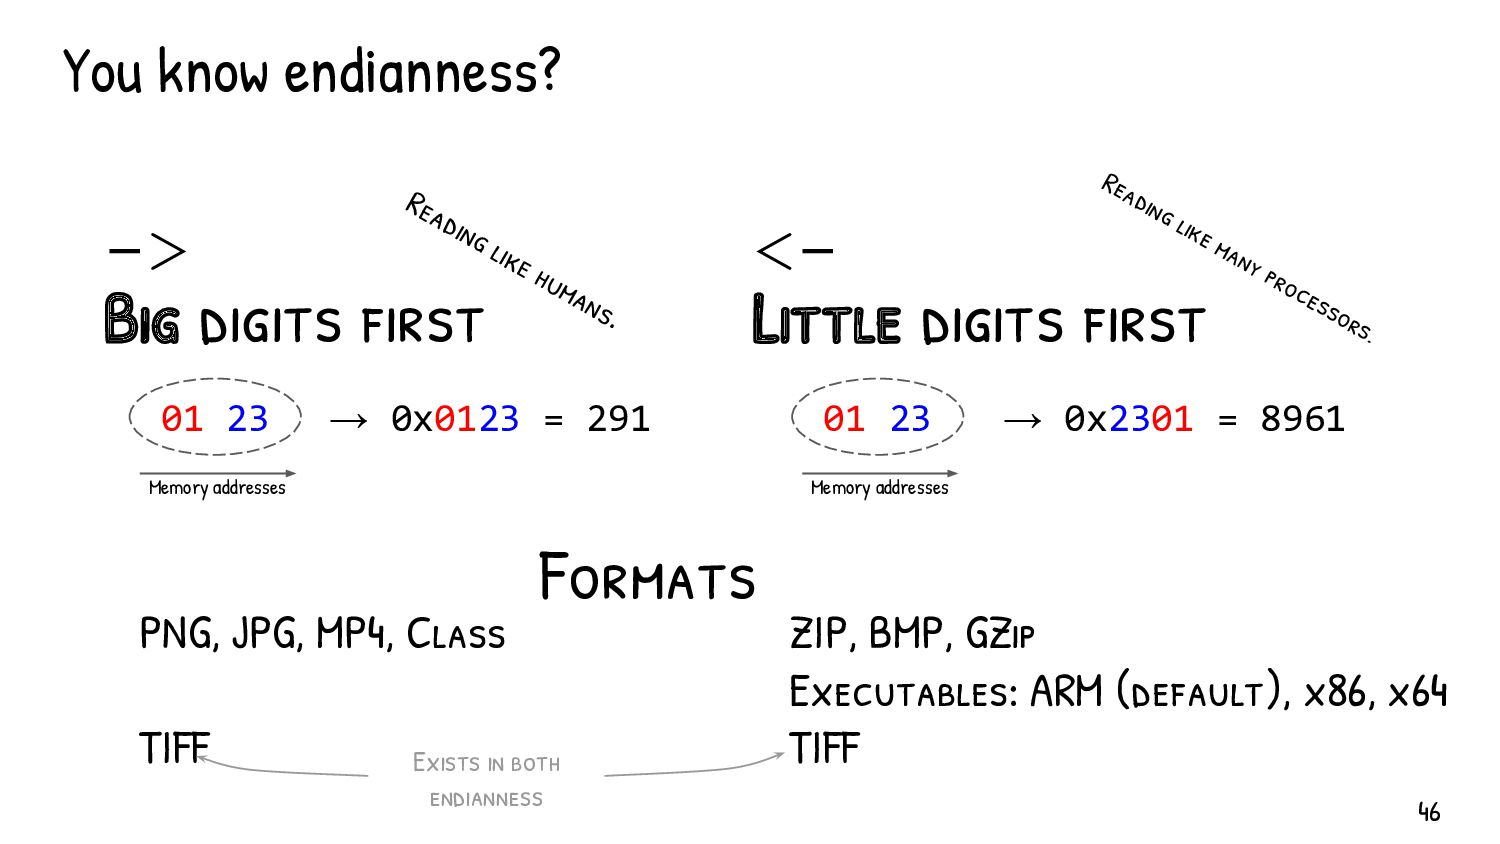 You know hexadecimal viewers? 000: 89 .P .N .G ...